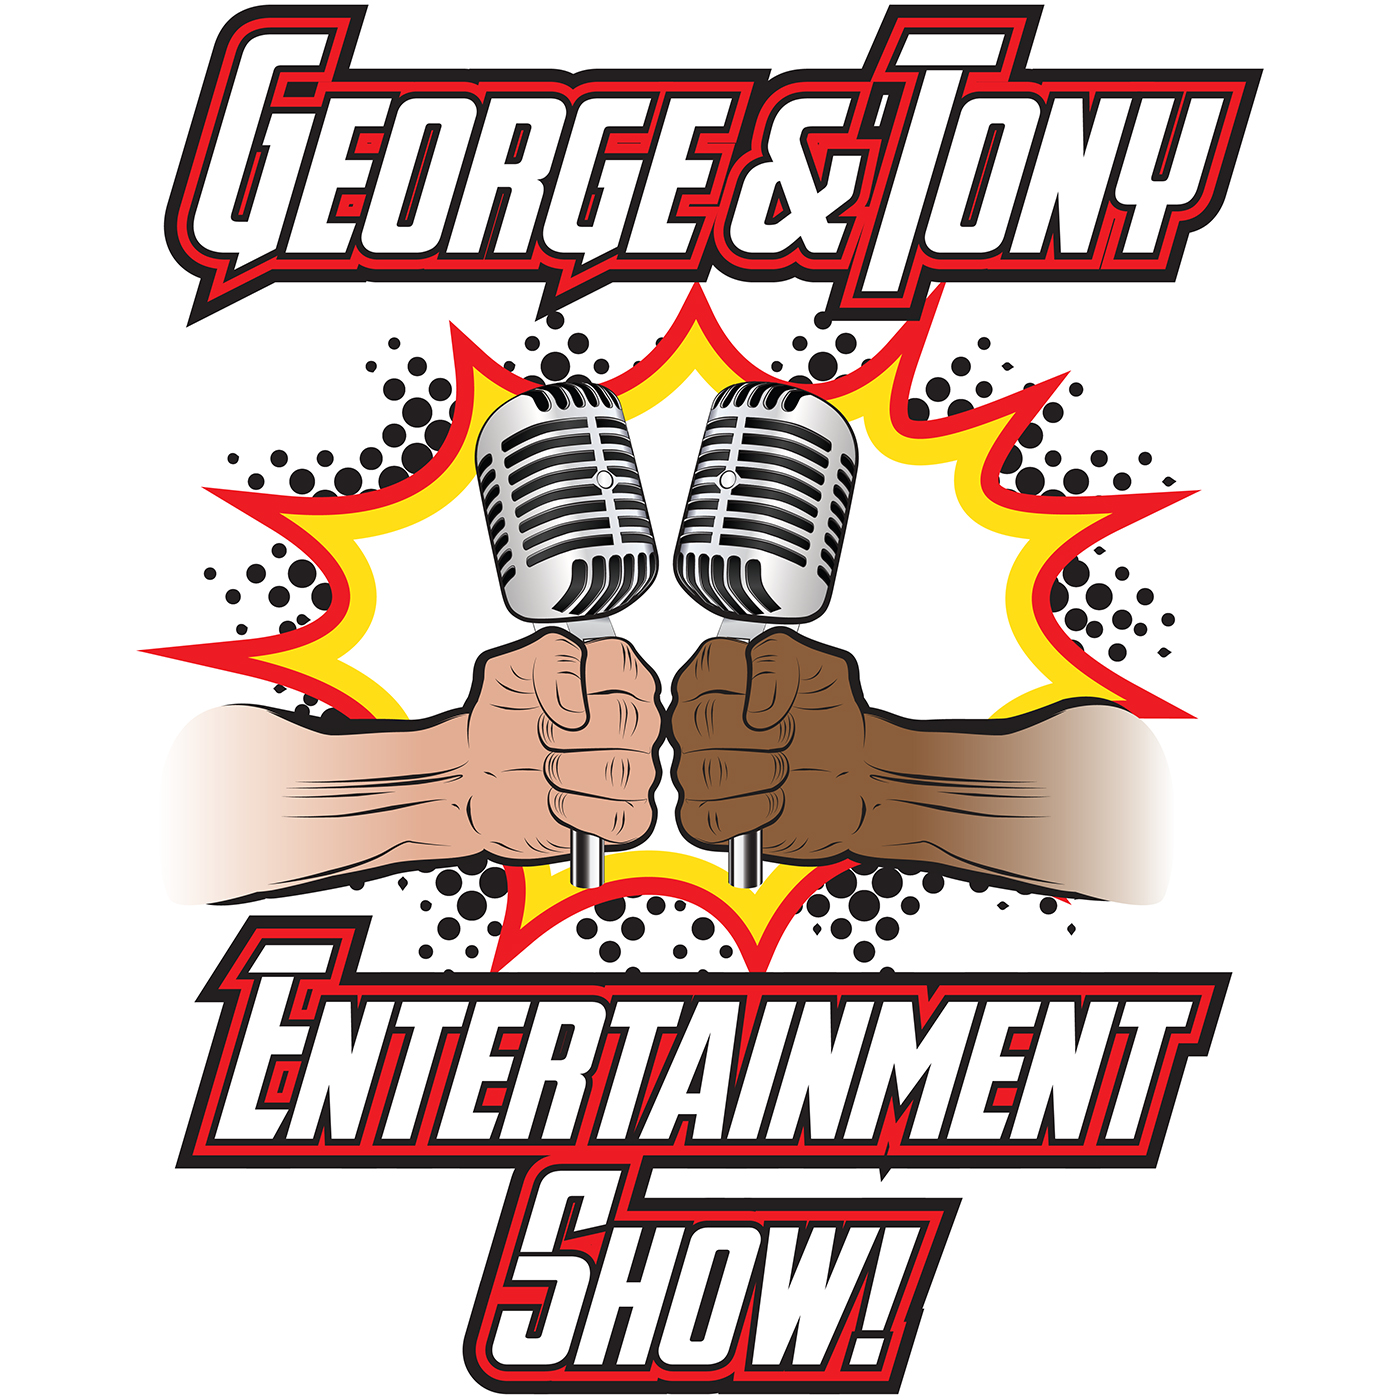 George and Tony Entertainment Show #14